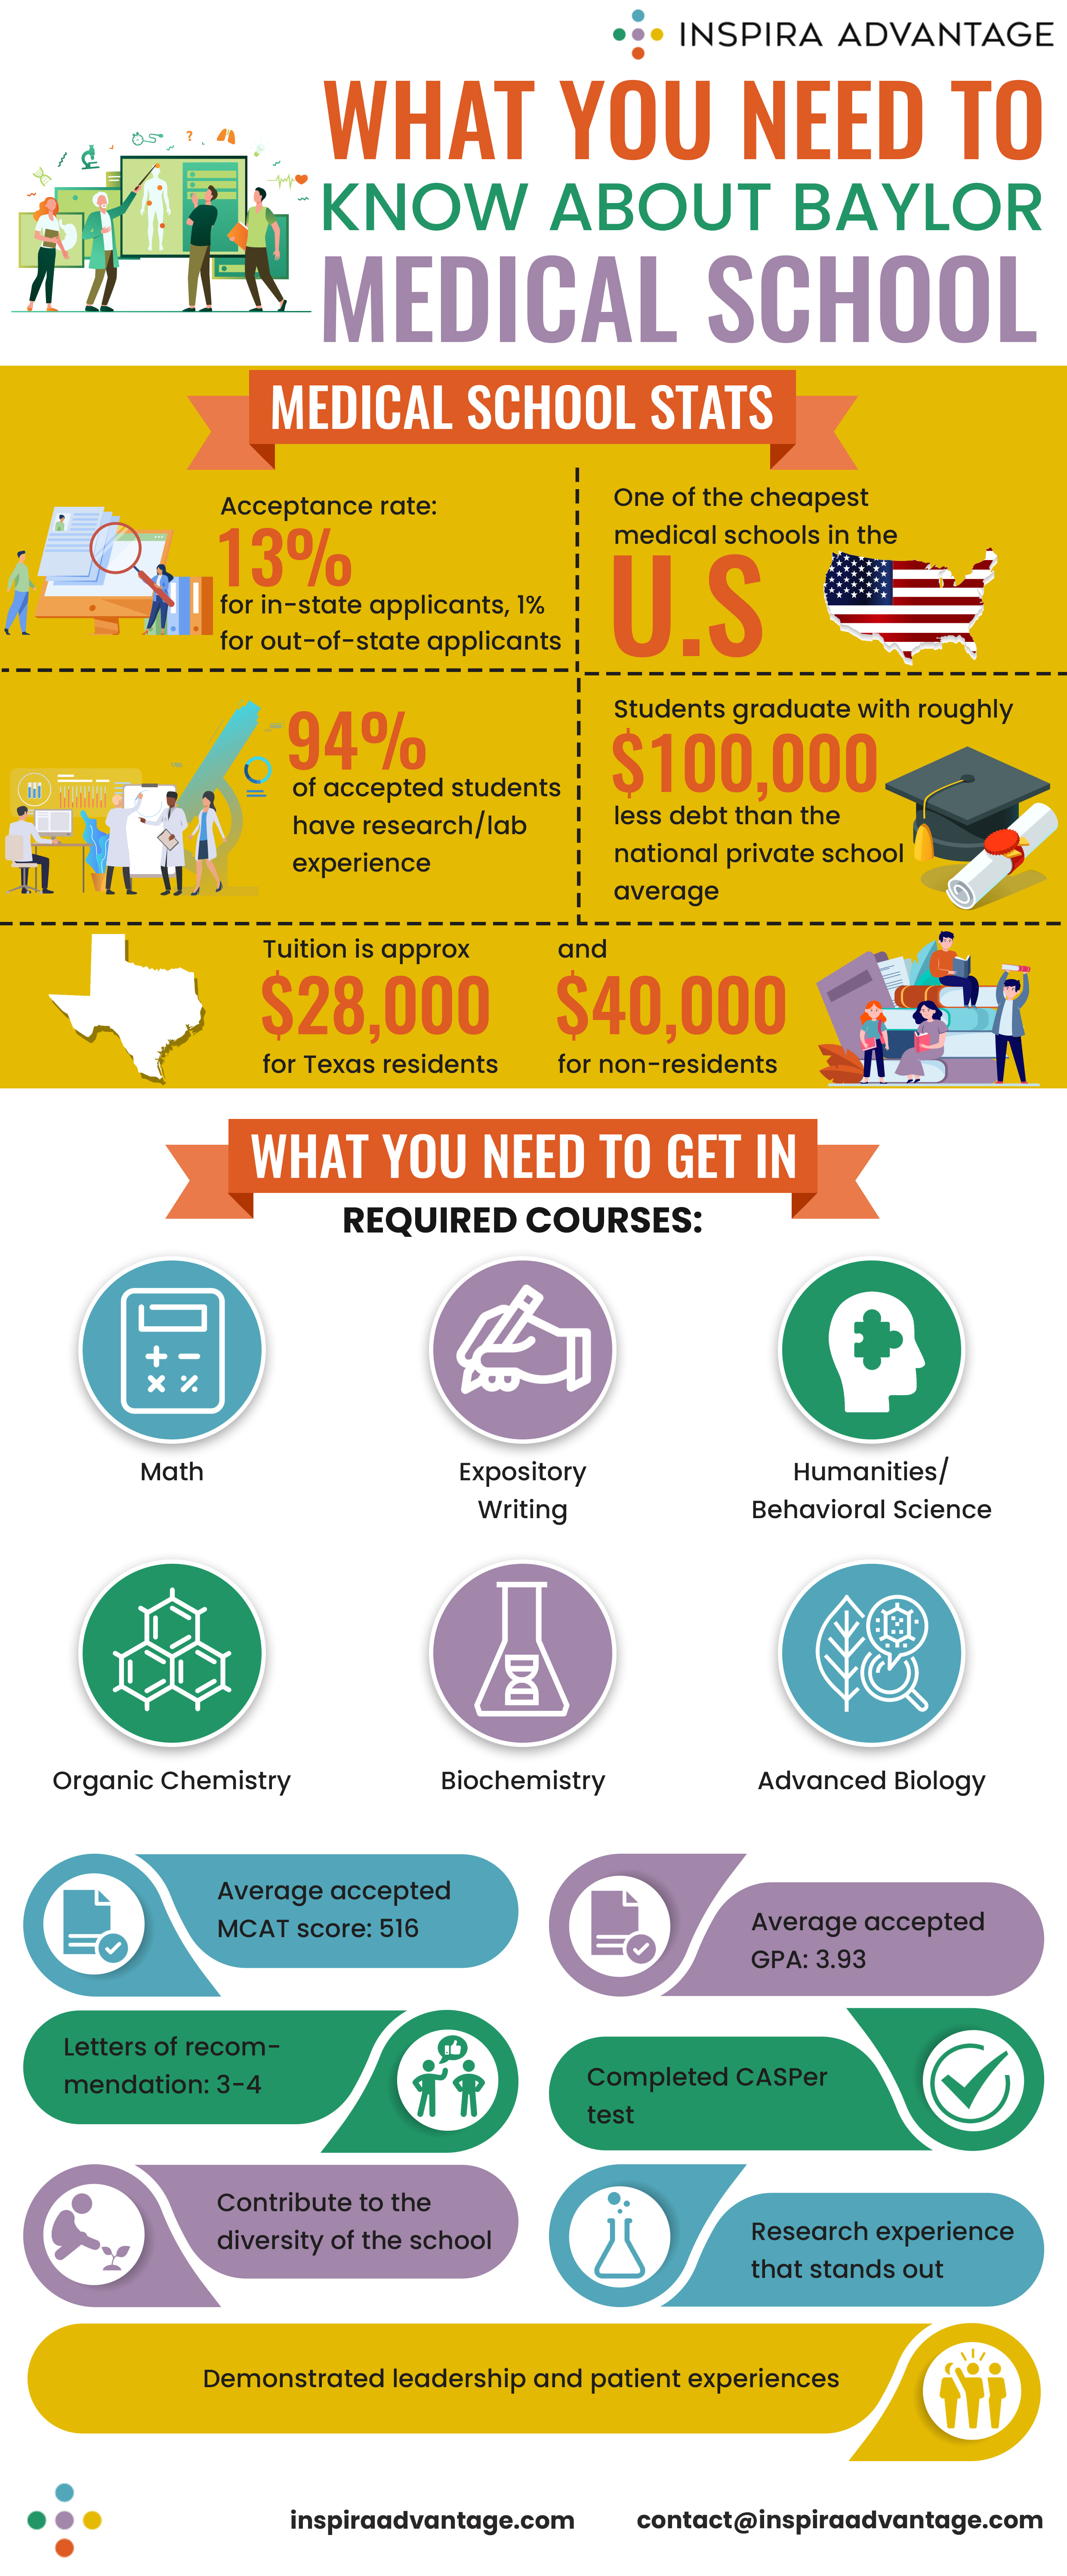 What you need to know about Baylor Medical School